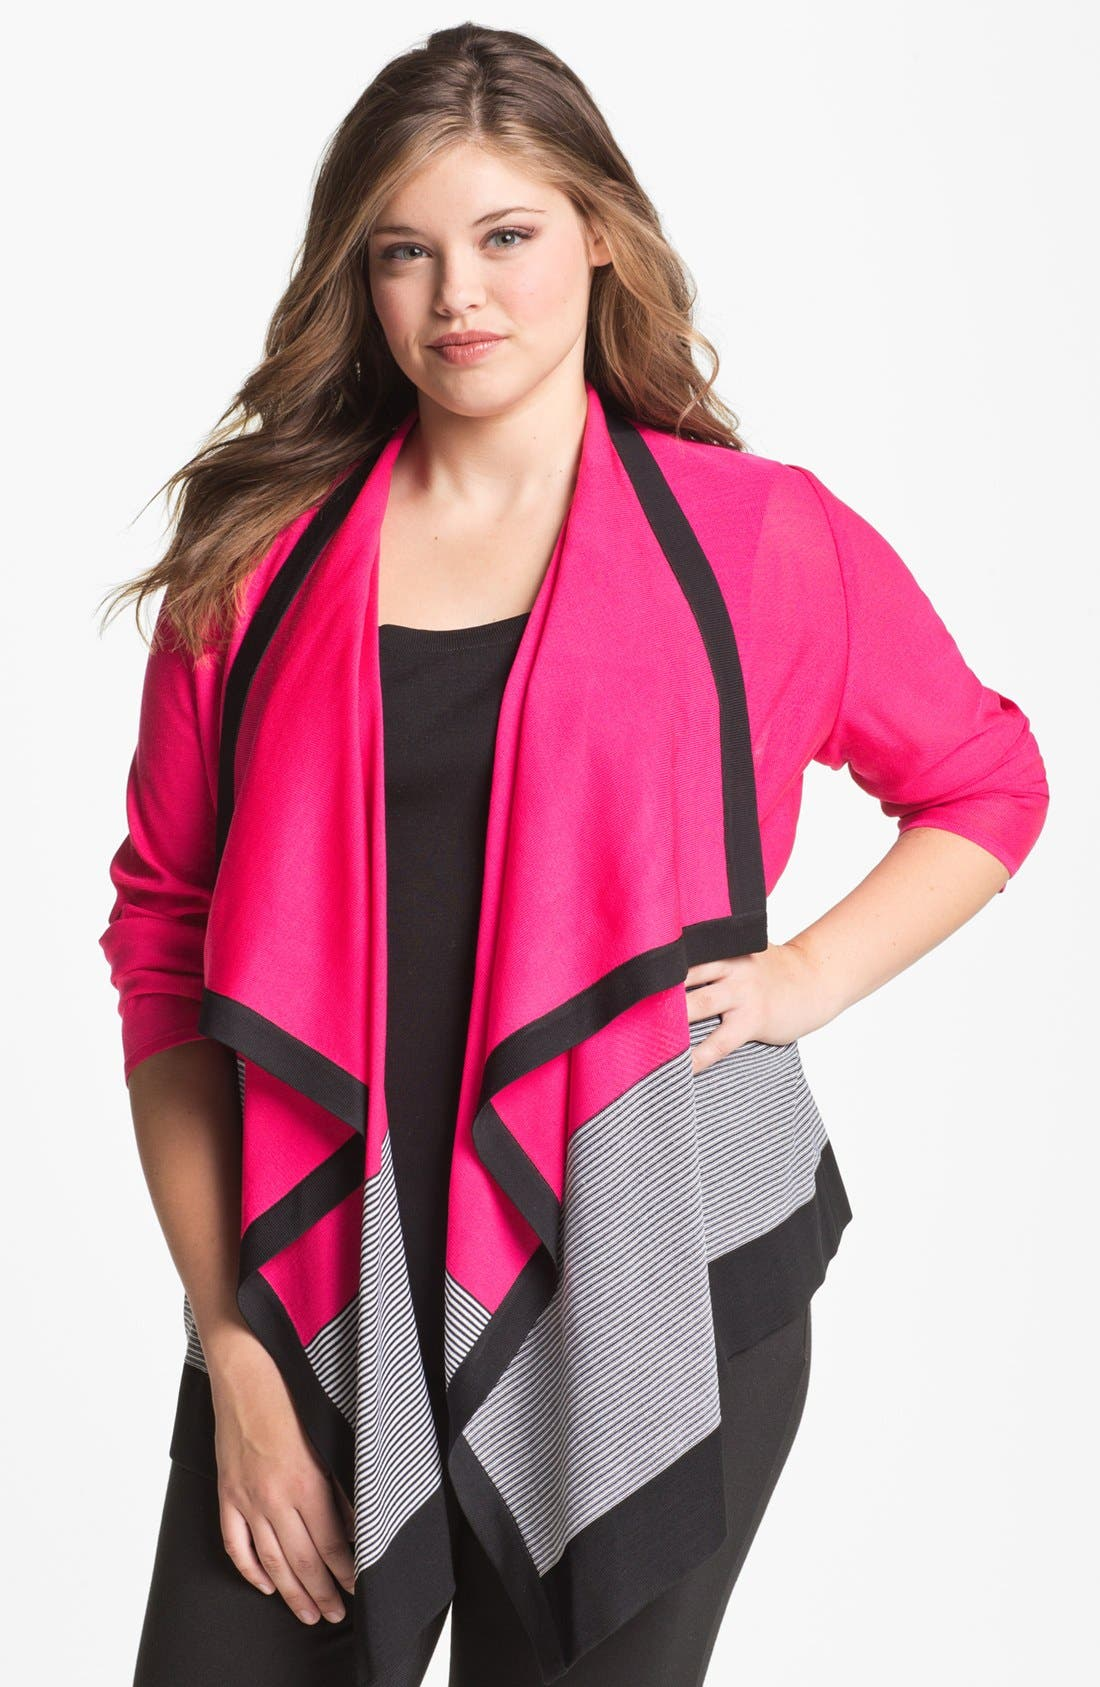 Alternate Image 1 Selected - Exclusively Misook 'Jenny' Drape Front Cardigan (Plus Size)